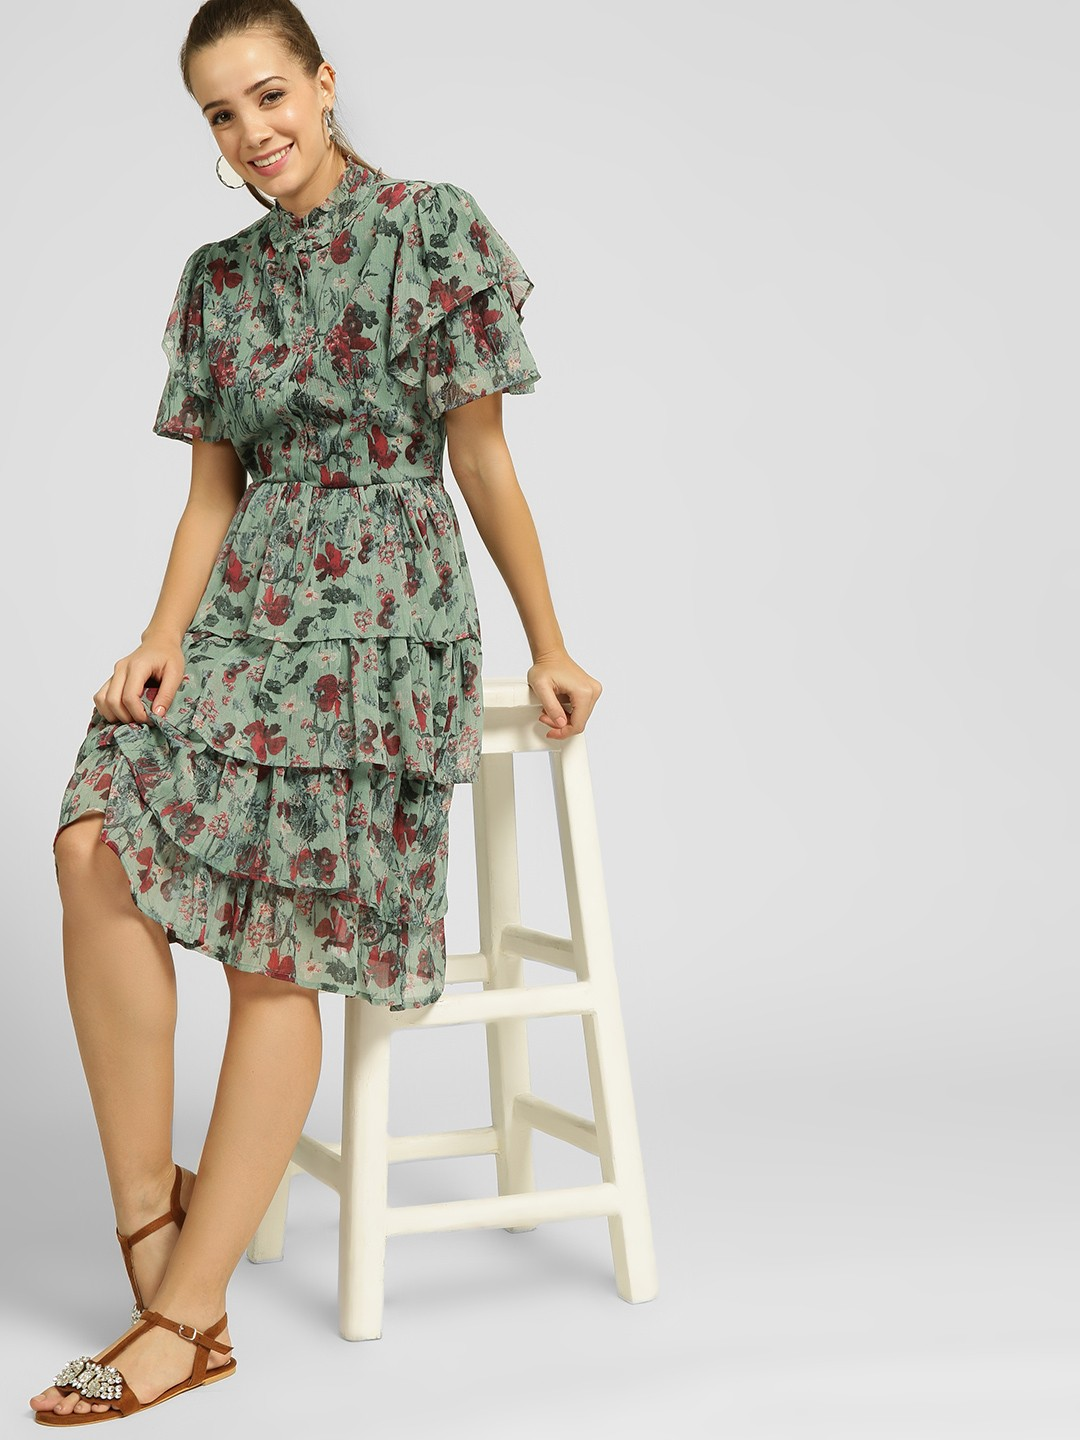 Closet Drama Print Floral Print Tiered Midi Dress 1